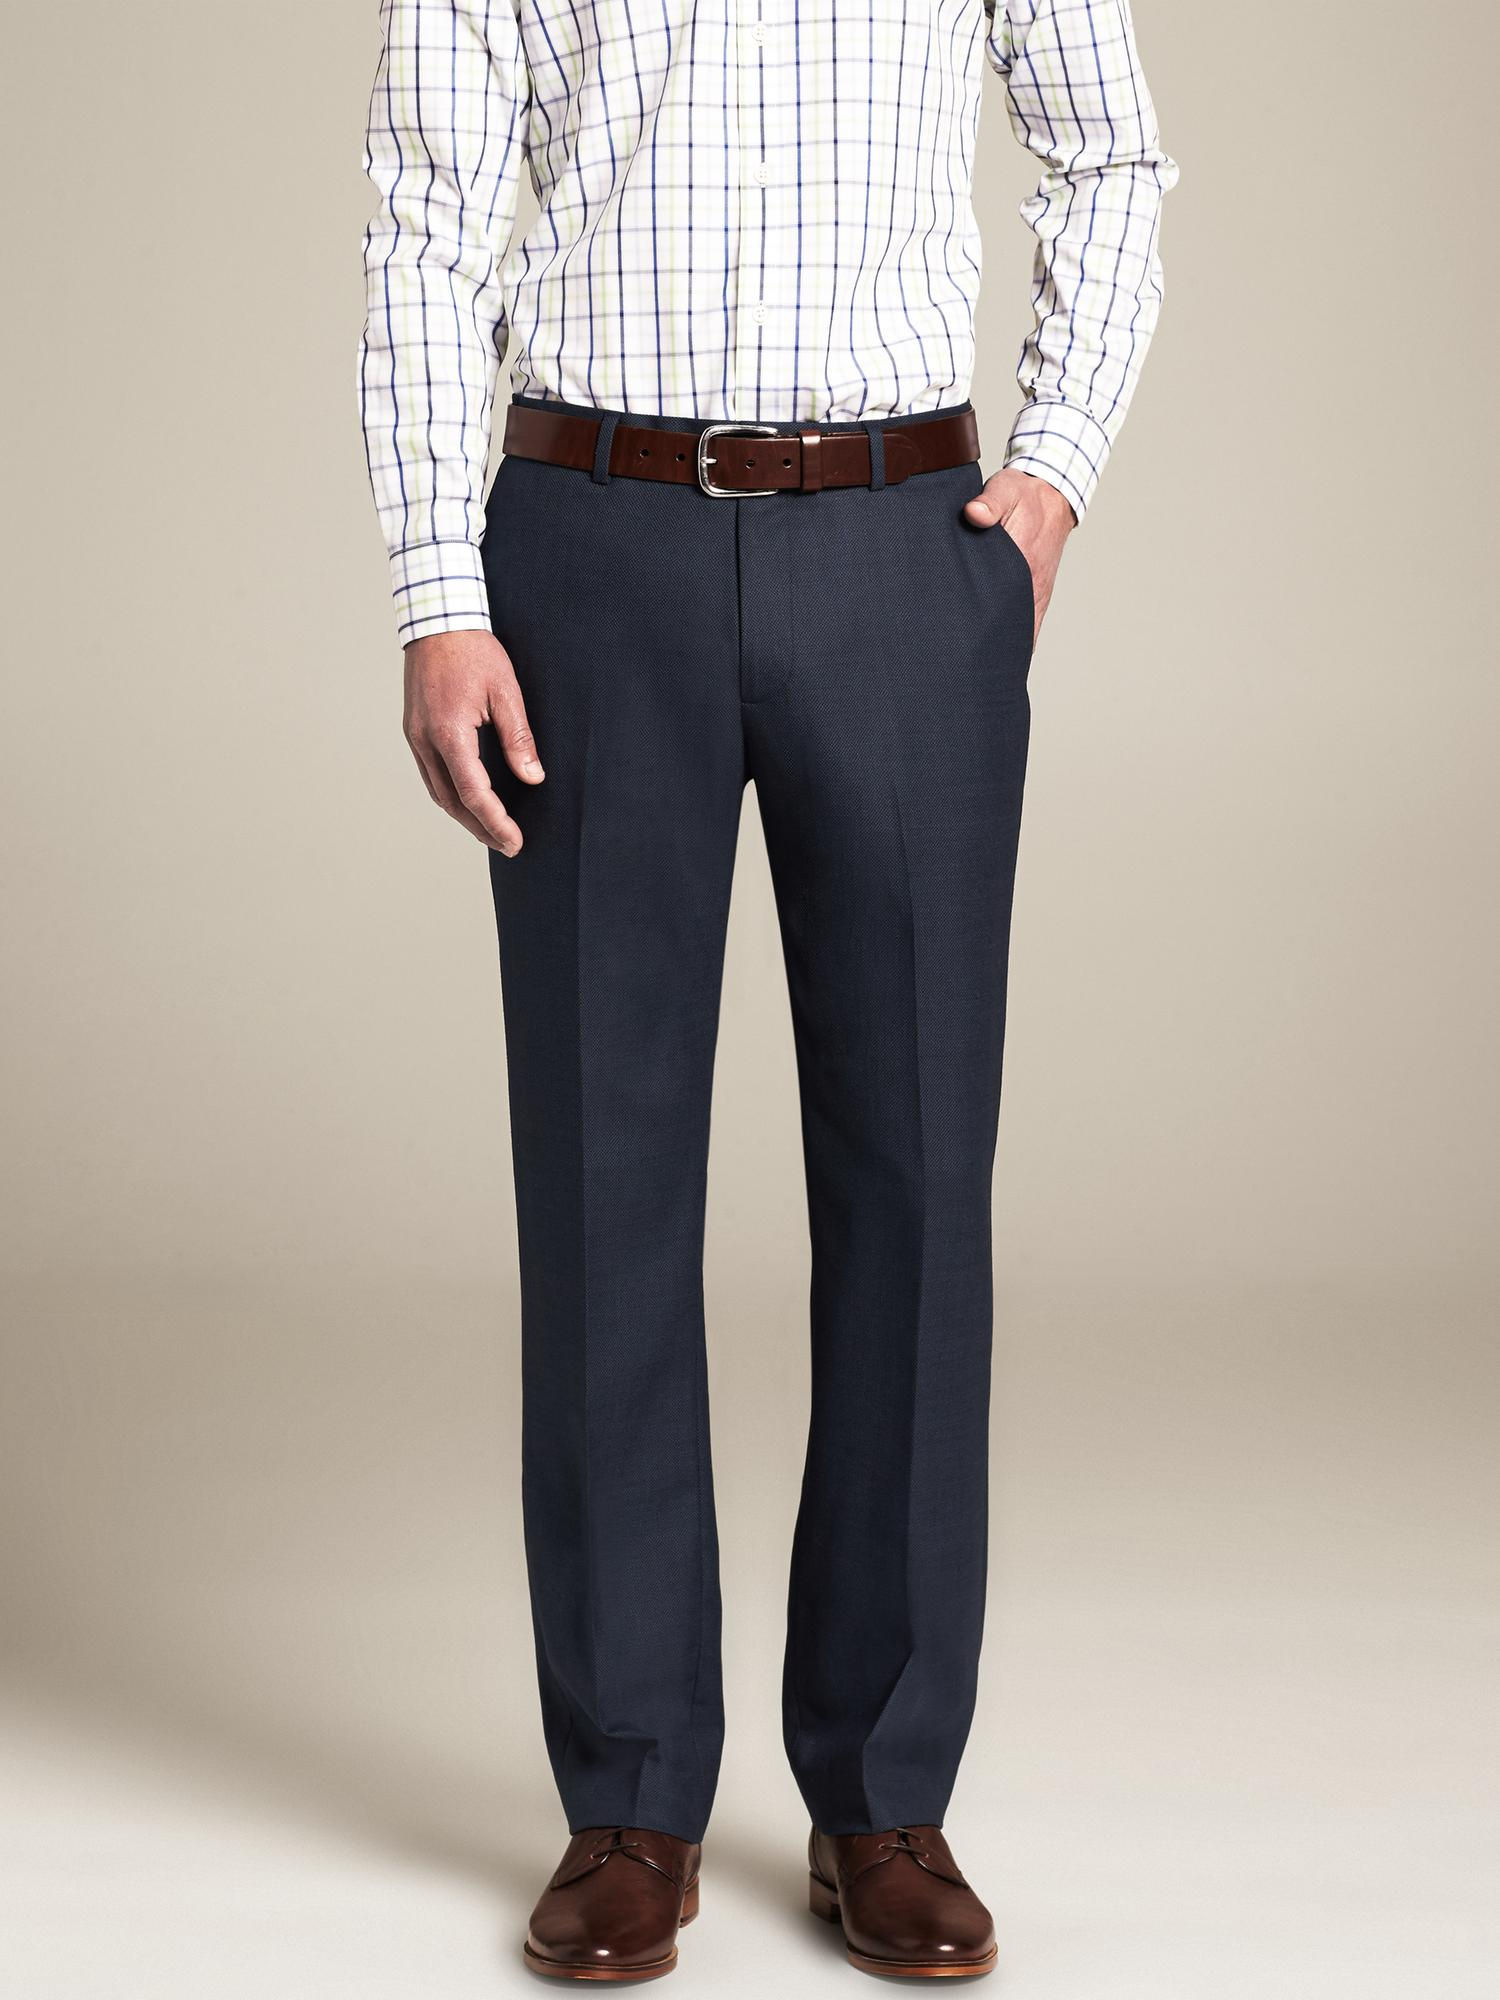 What About Dress Pants? Needed a dressier option? You need a men's pant that looks the part. The best men's pants for these occasions range from wool blends to non-iron fabrics engineered for the man on-the-go. Wool blend dress pants are a men's fashion pants must.